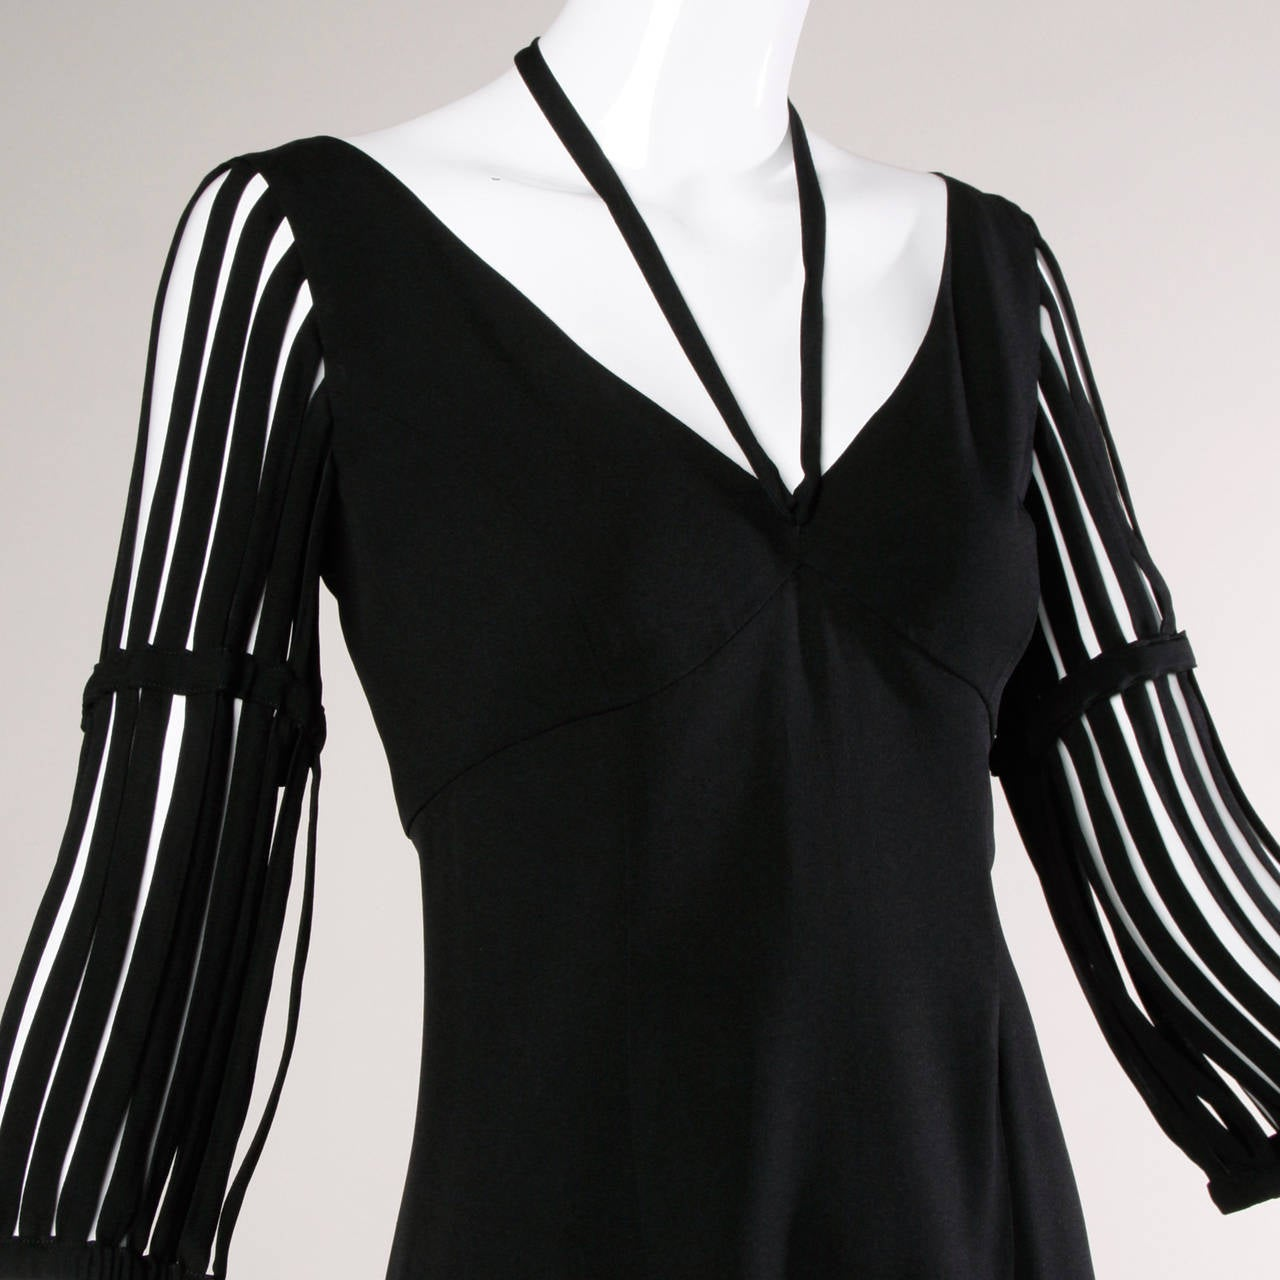 Fantastic Moschino Cheap & Chic little black dress with cut out cage sleeves and a sweet heart bustline. 